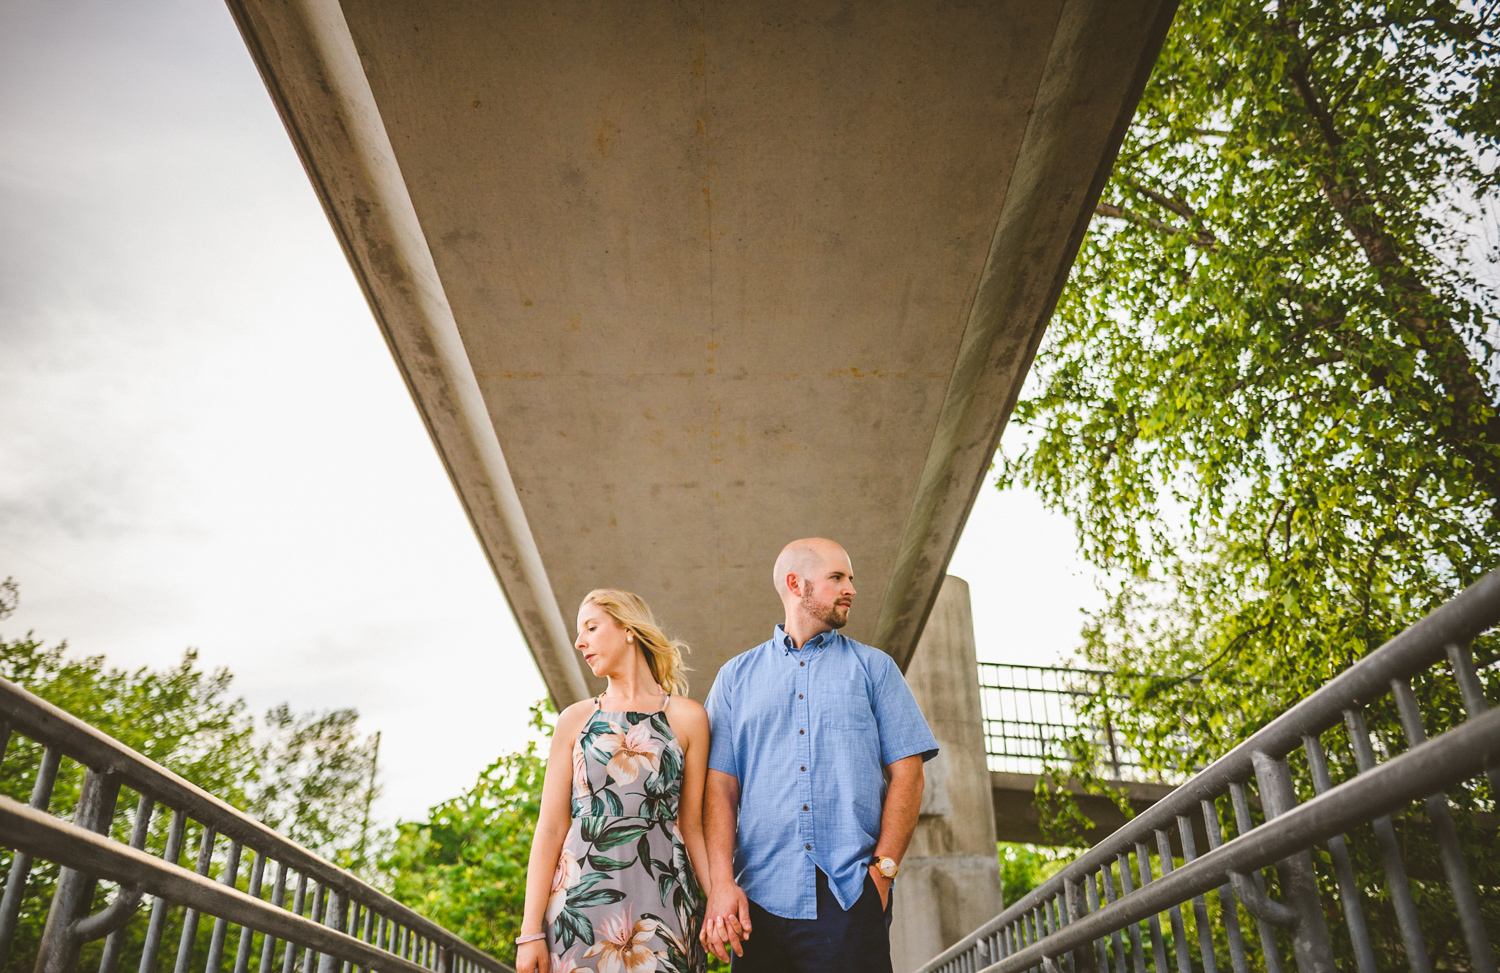 004 - couple poses for a creative photo at floodwall park in richmond virginia.jpg